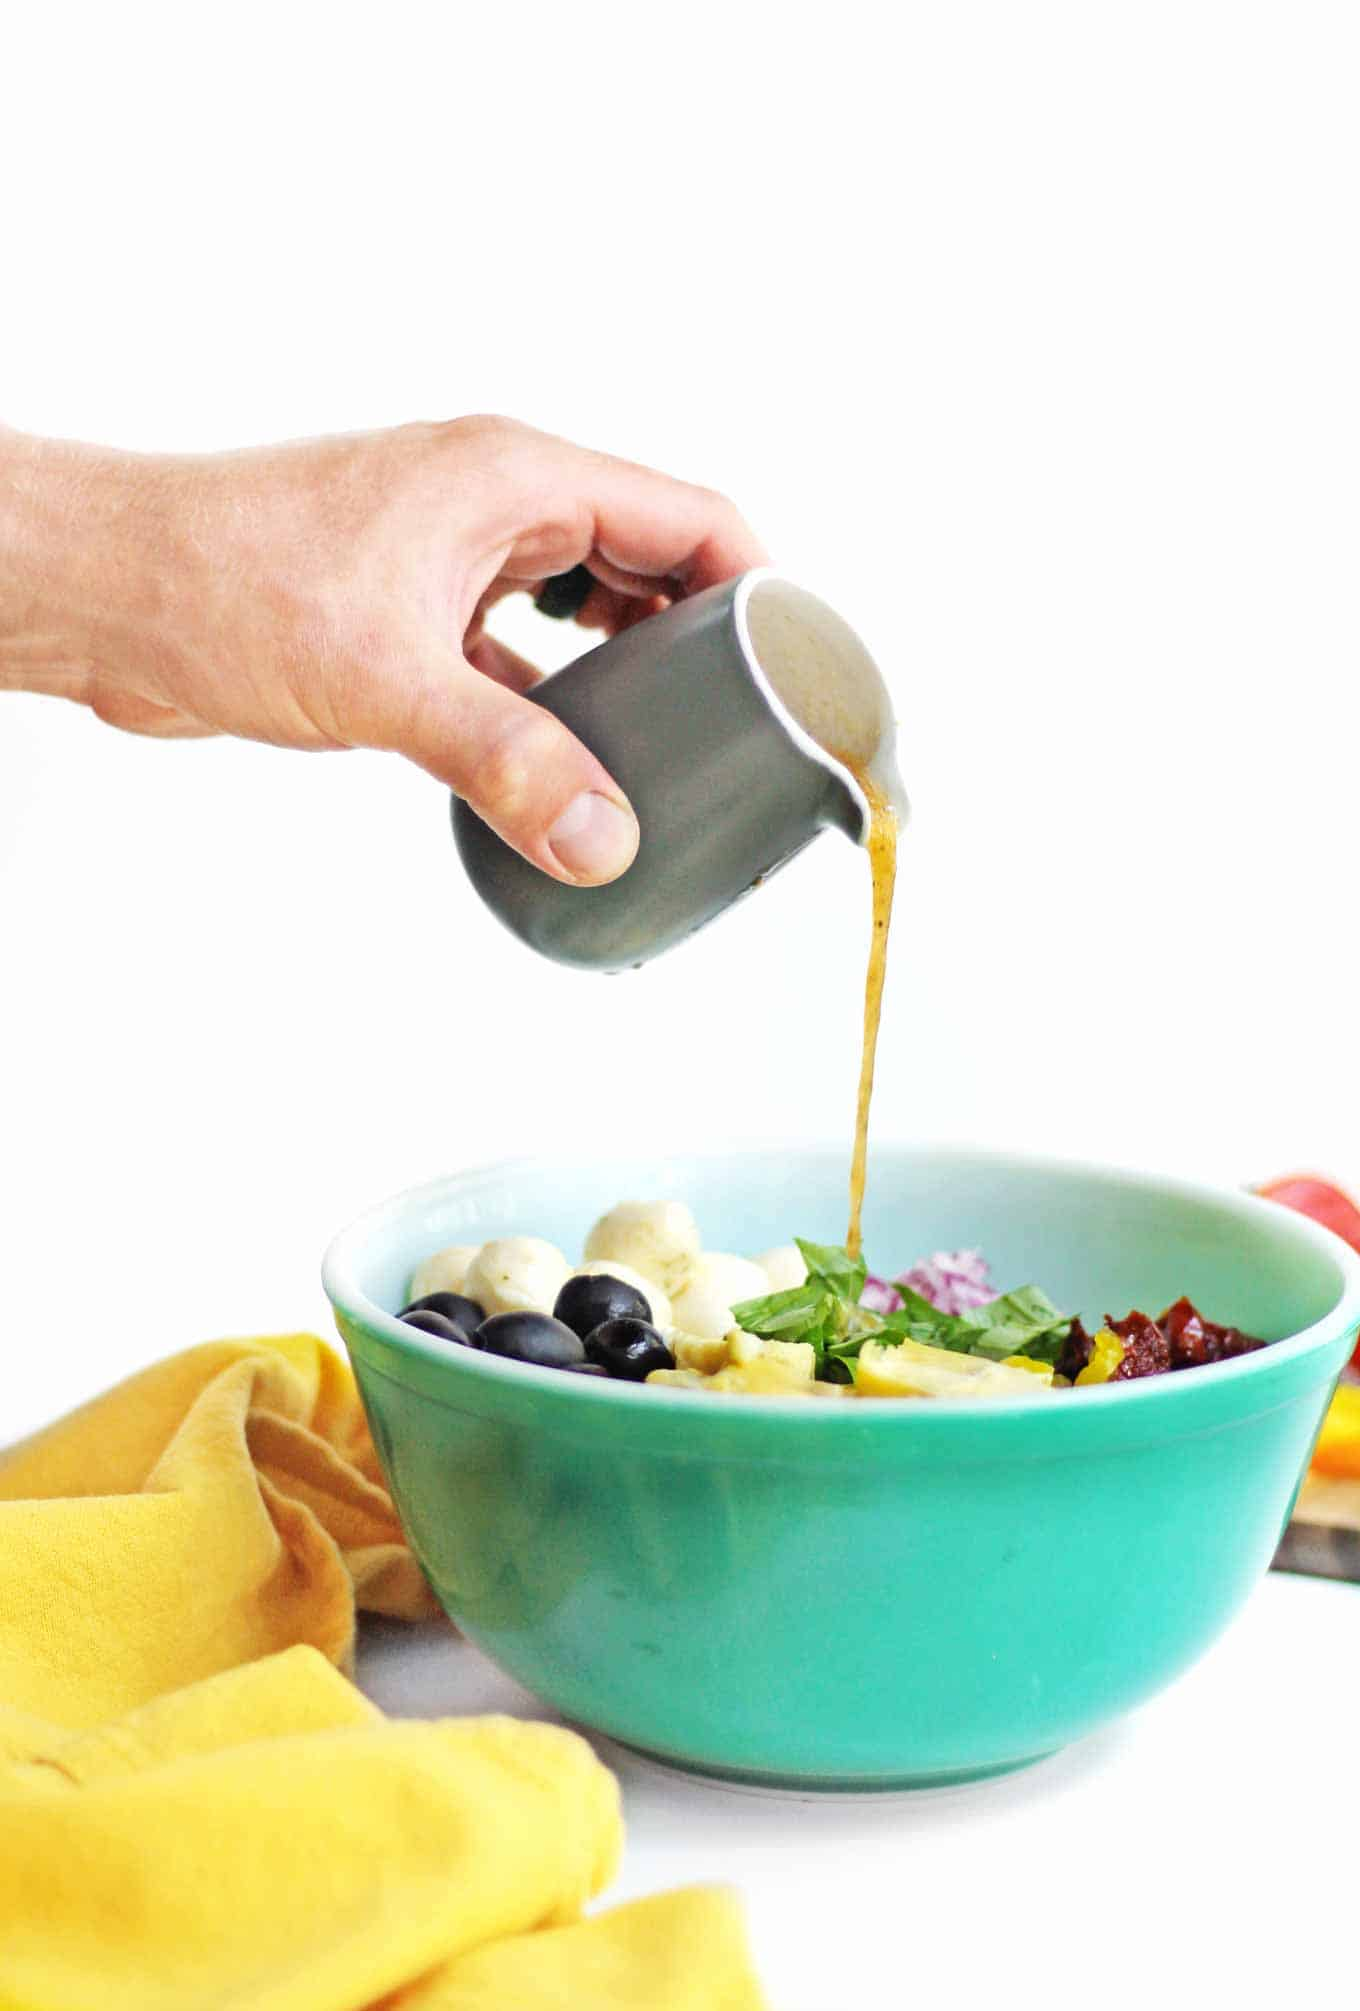 Pouring dressing onto pasta salad